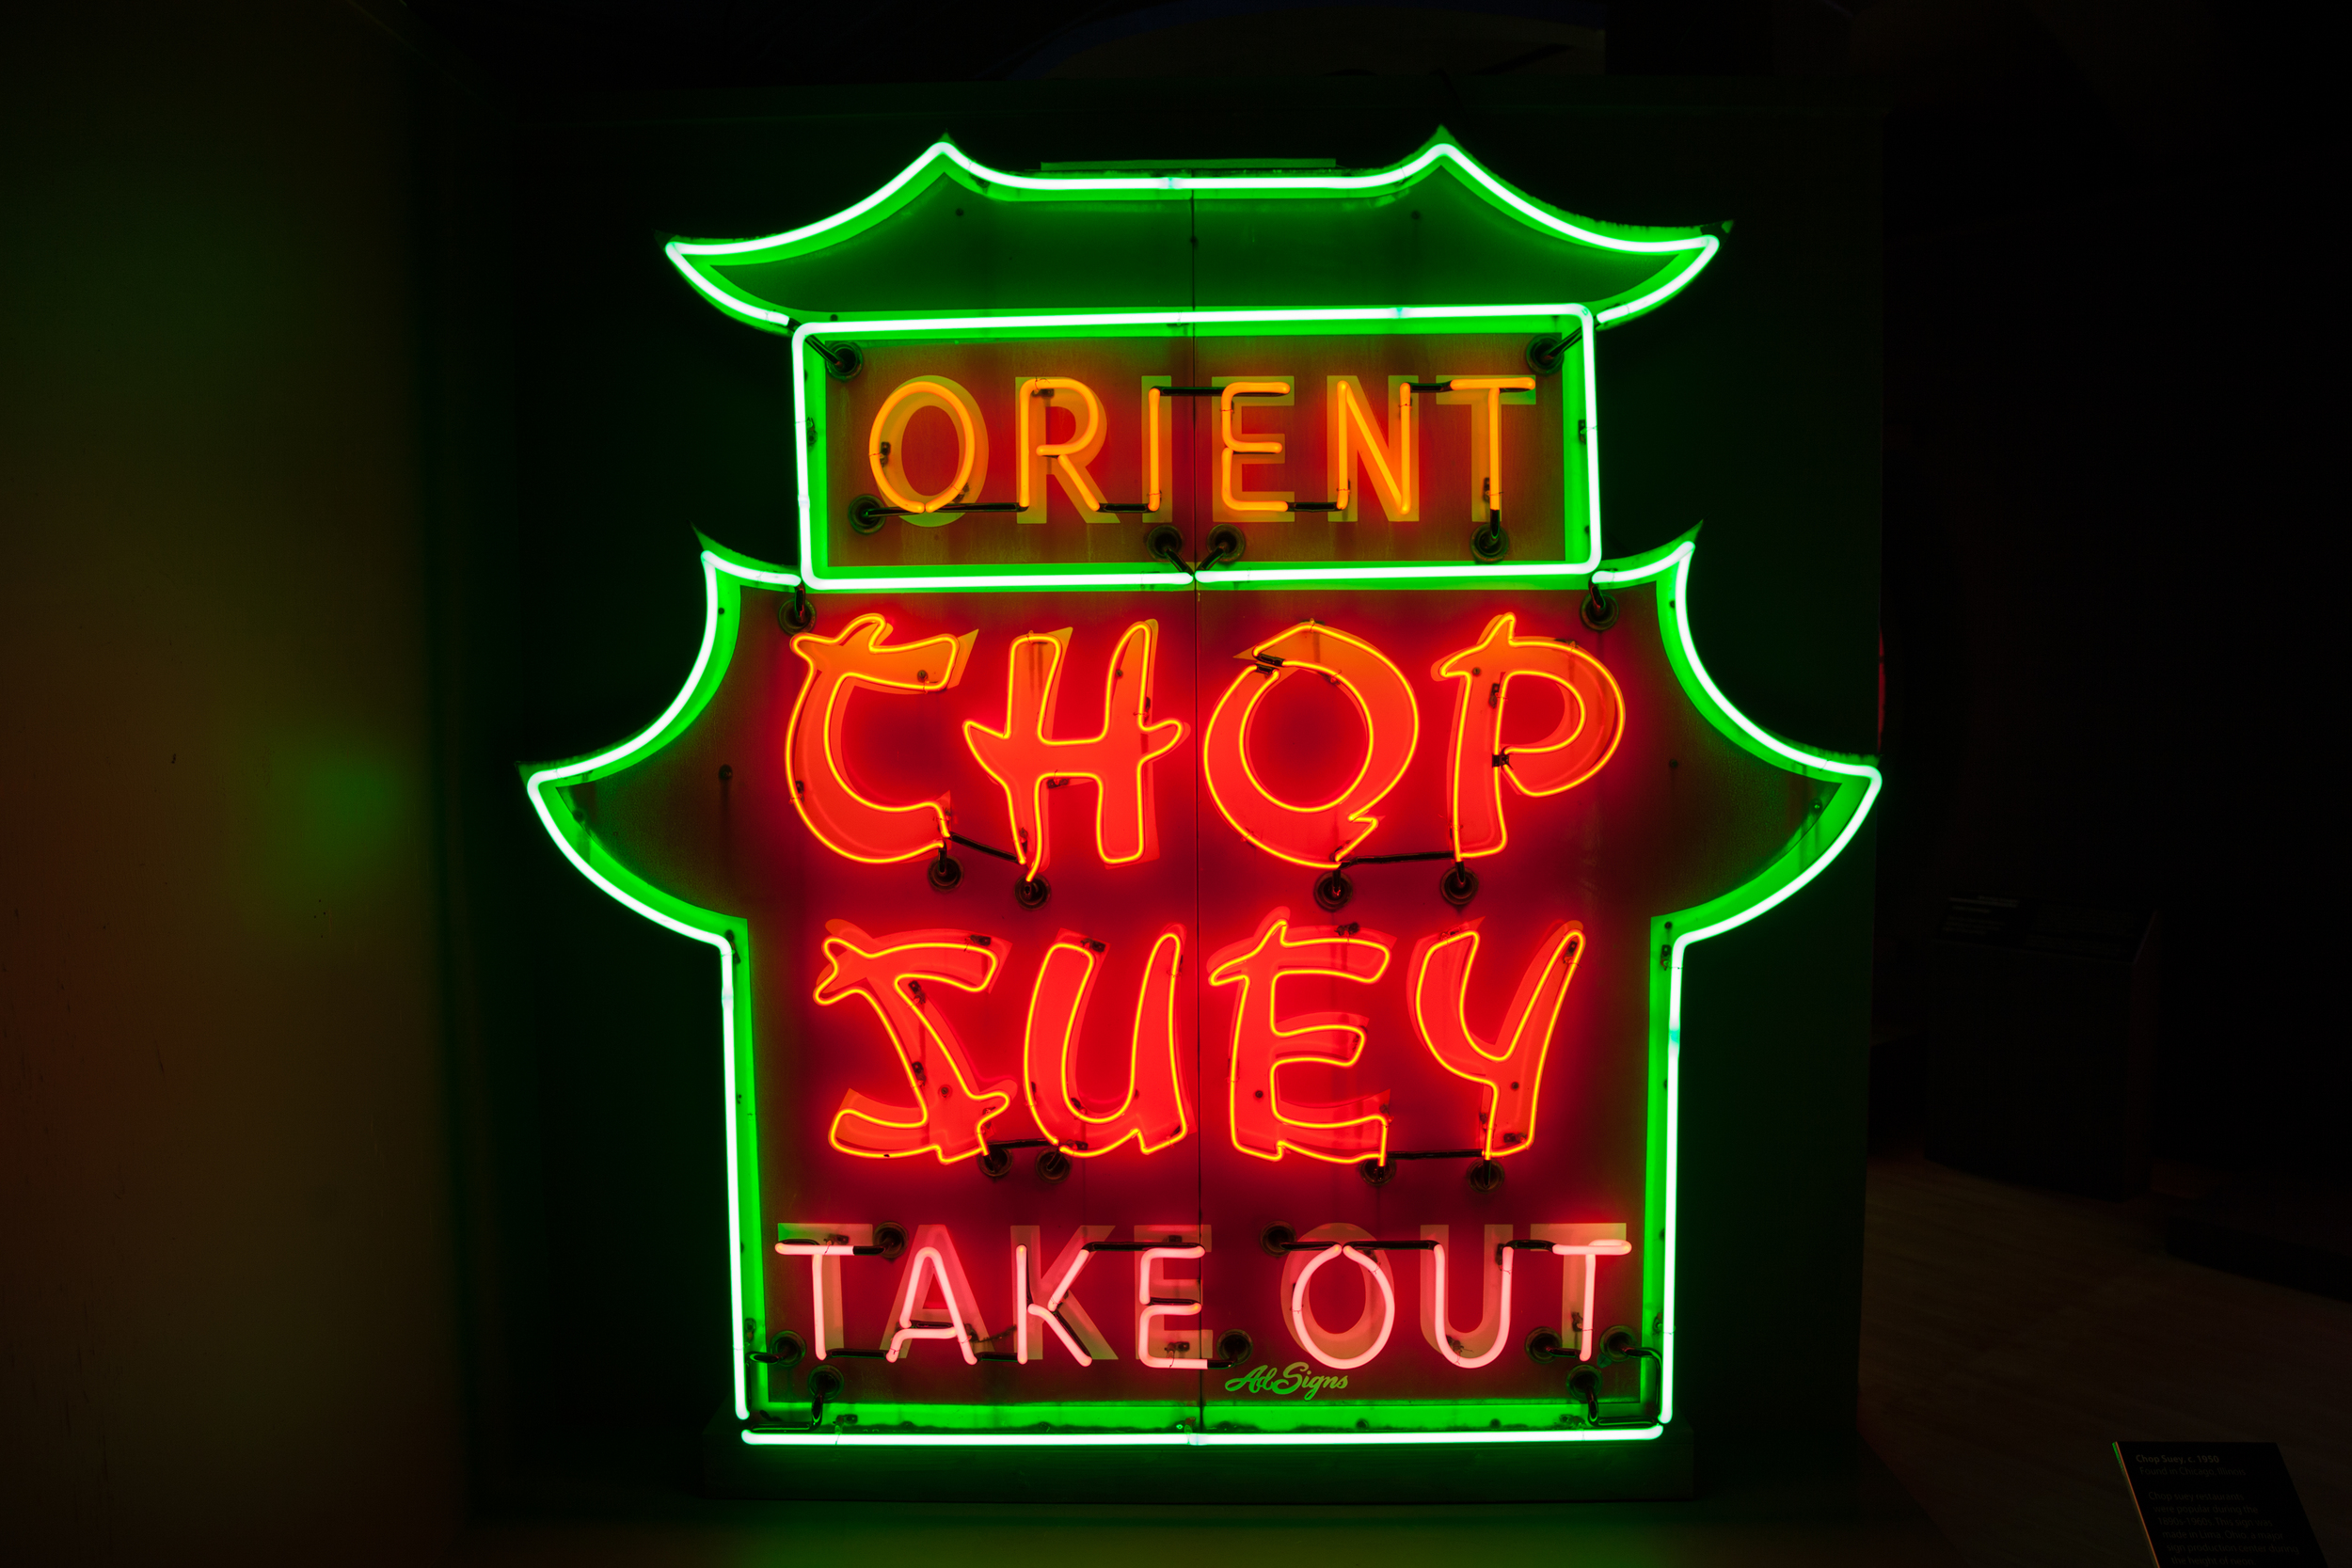 Orient Chop Suey Take Out Neon Sign.